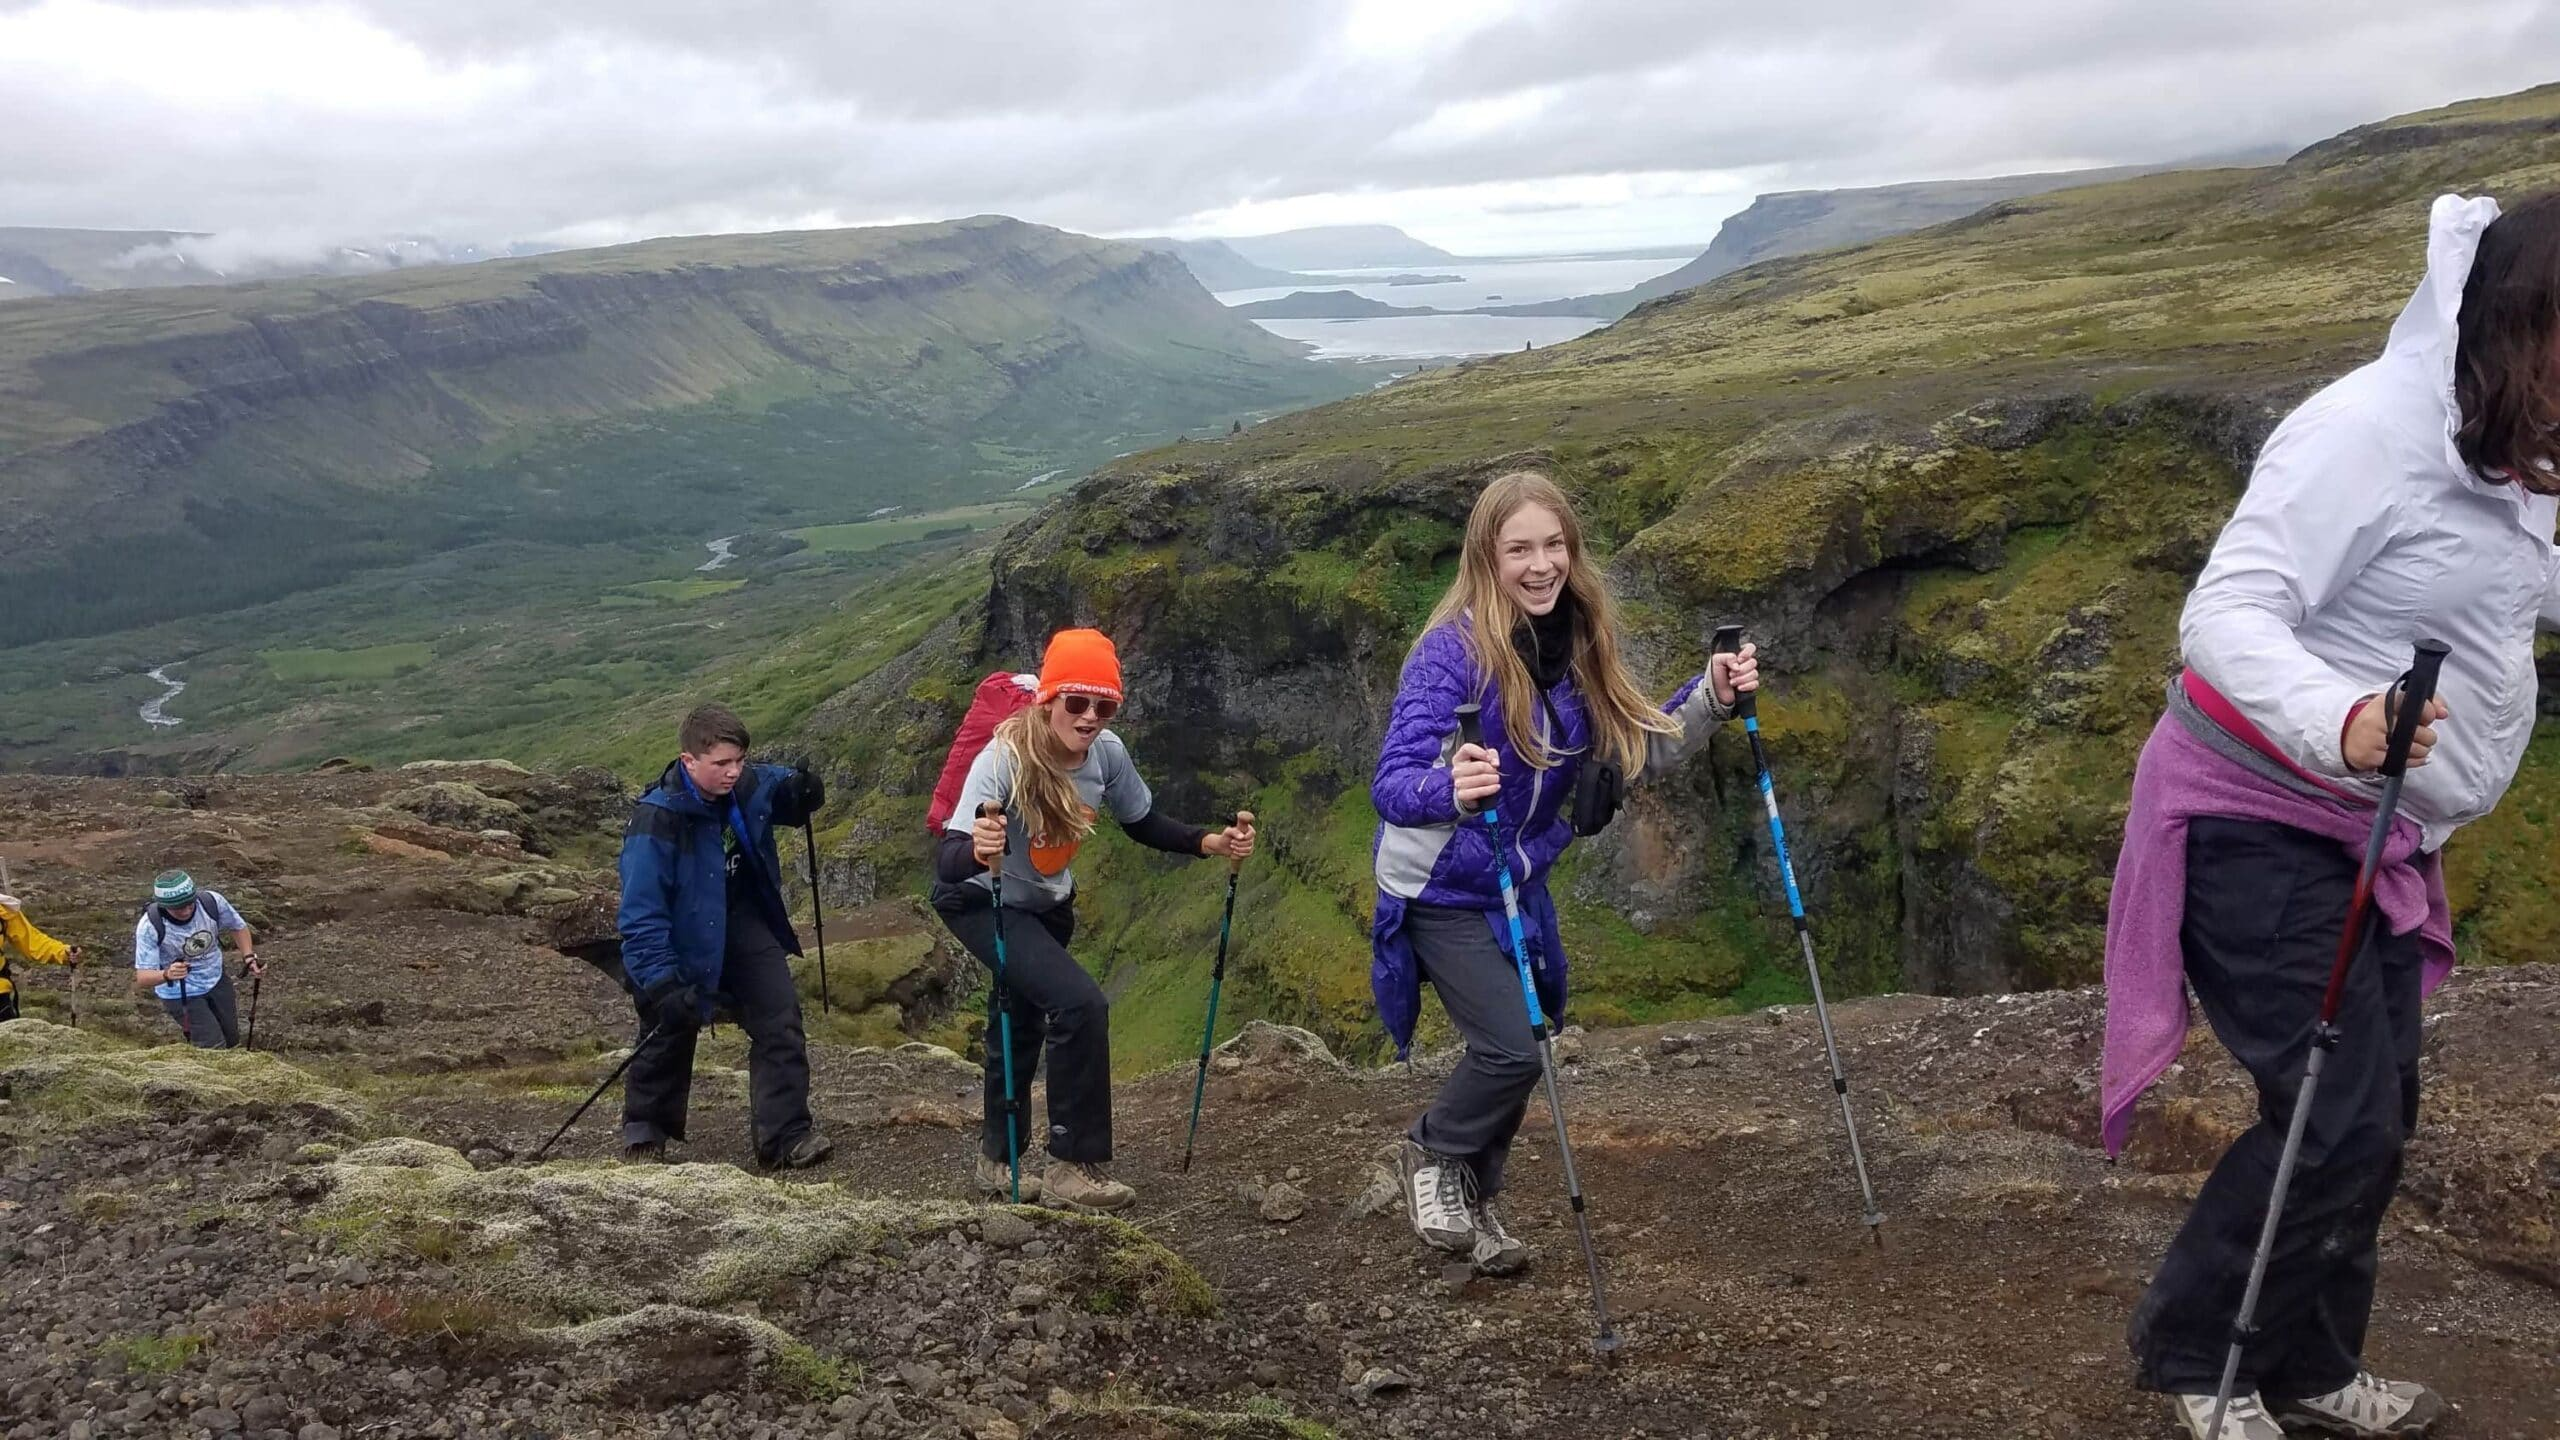 Cloudy and cool weather during a day hike on this teen adventure program